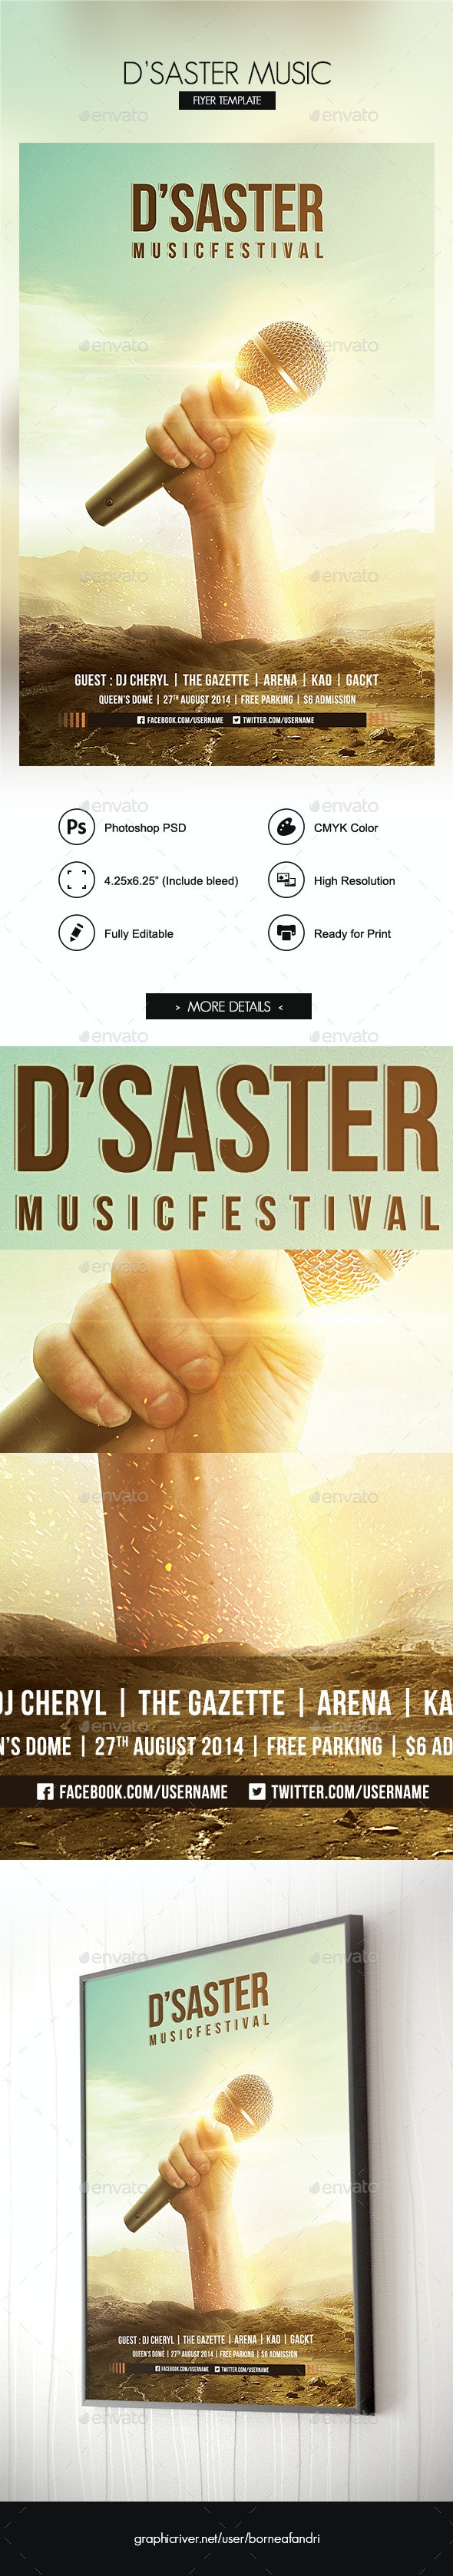 DSaster Music Flyer Template - Clubs & Parties Events